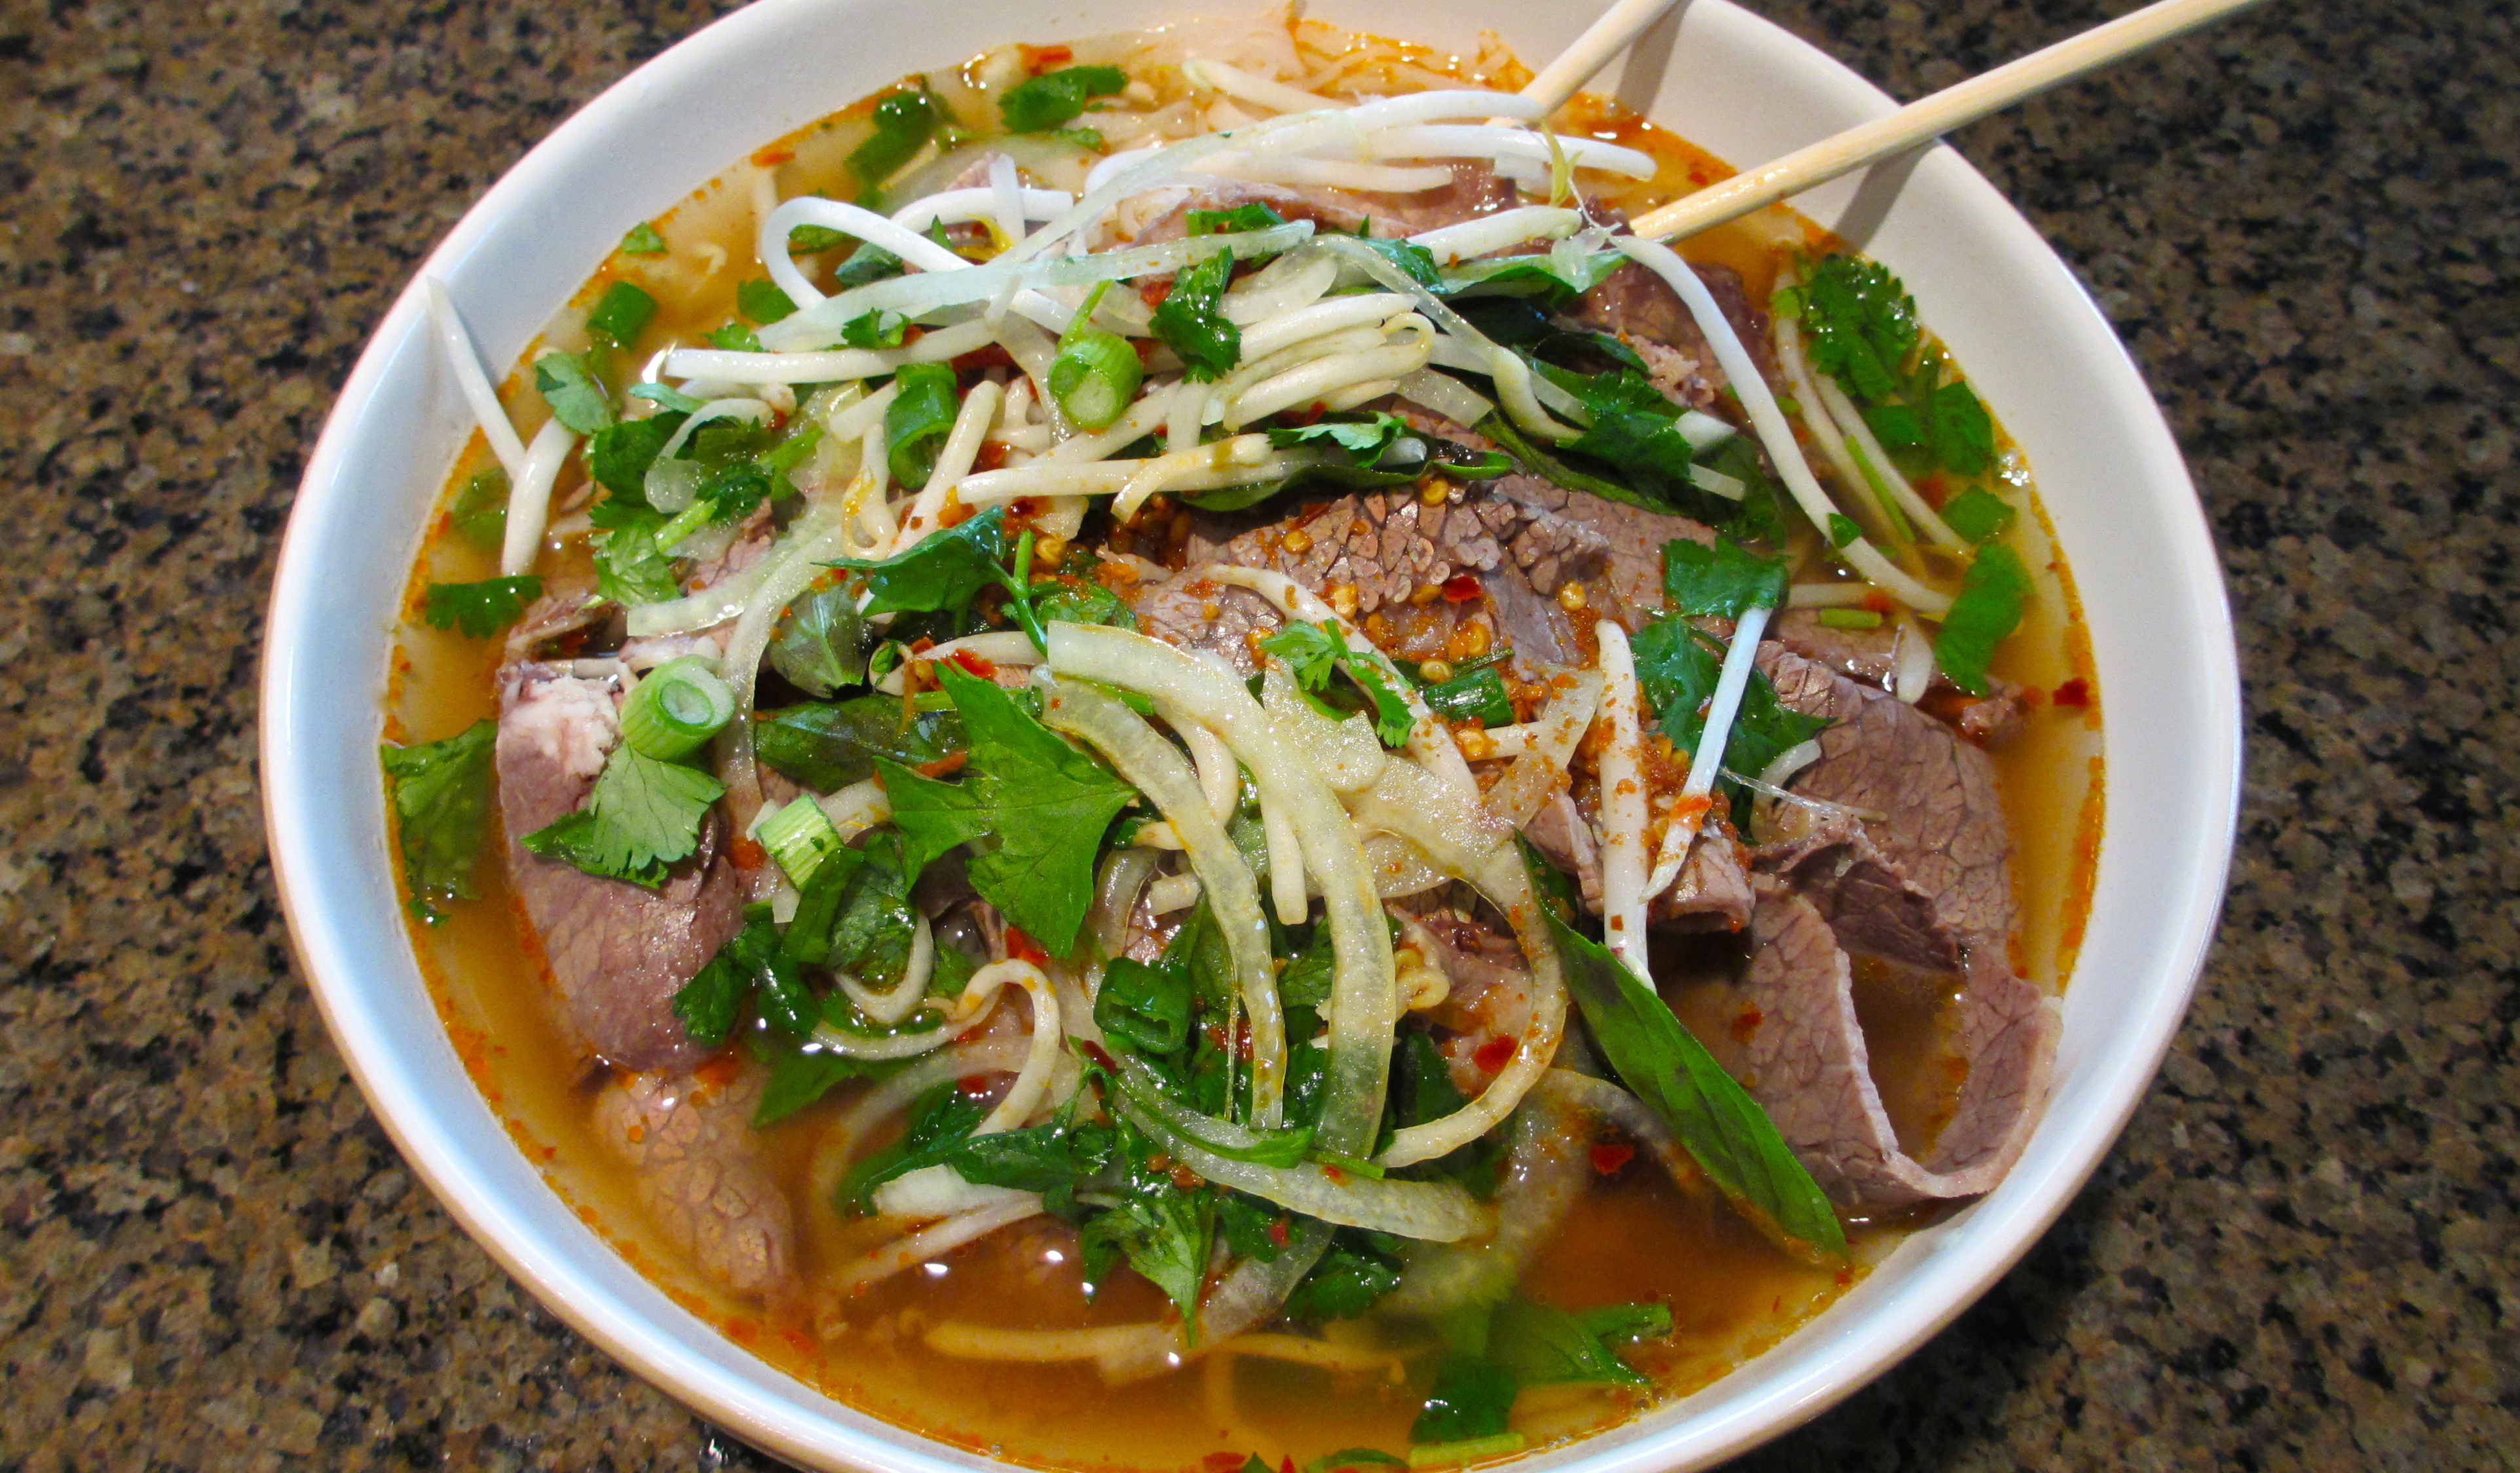 Pho viet anh find of the day veehive - Vietnamese cuisine pho ...